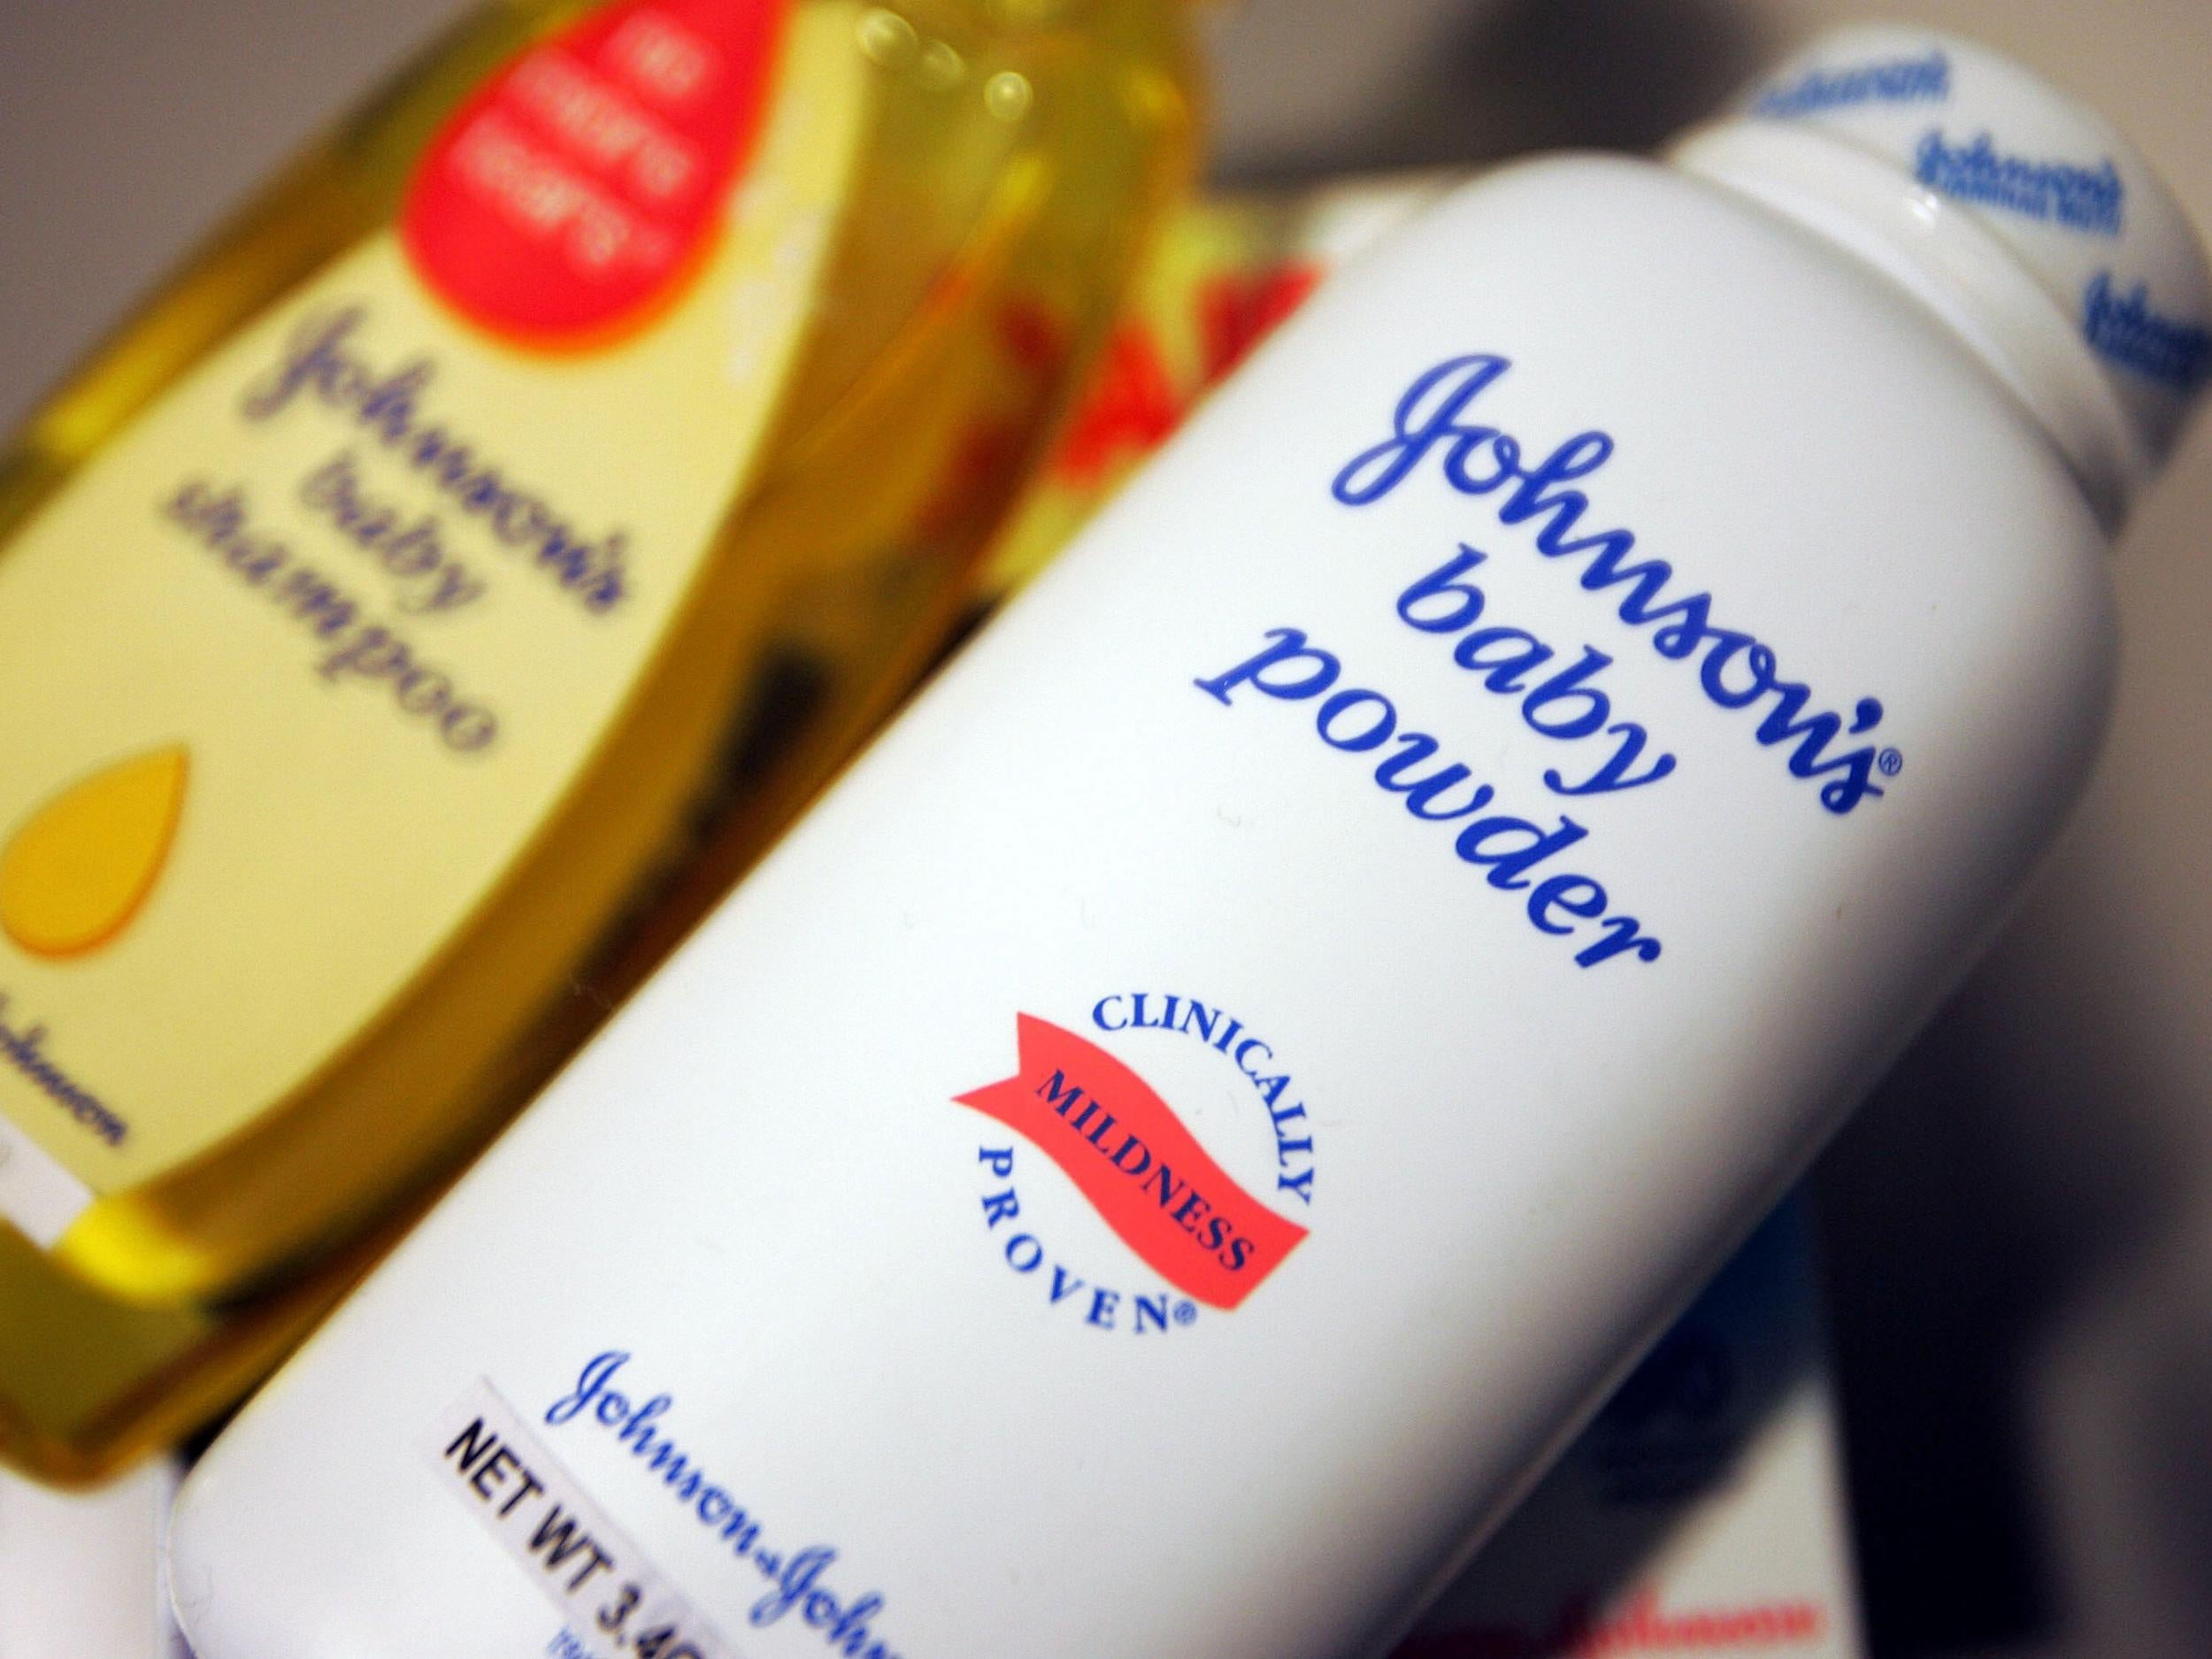 Johnson Johnson Responds To Claims Baby Powder Causes Ovarian Cancer The Independent The Independent